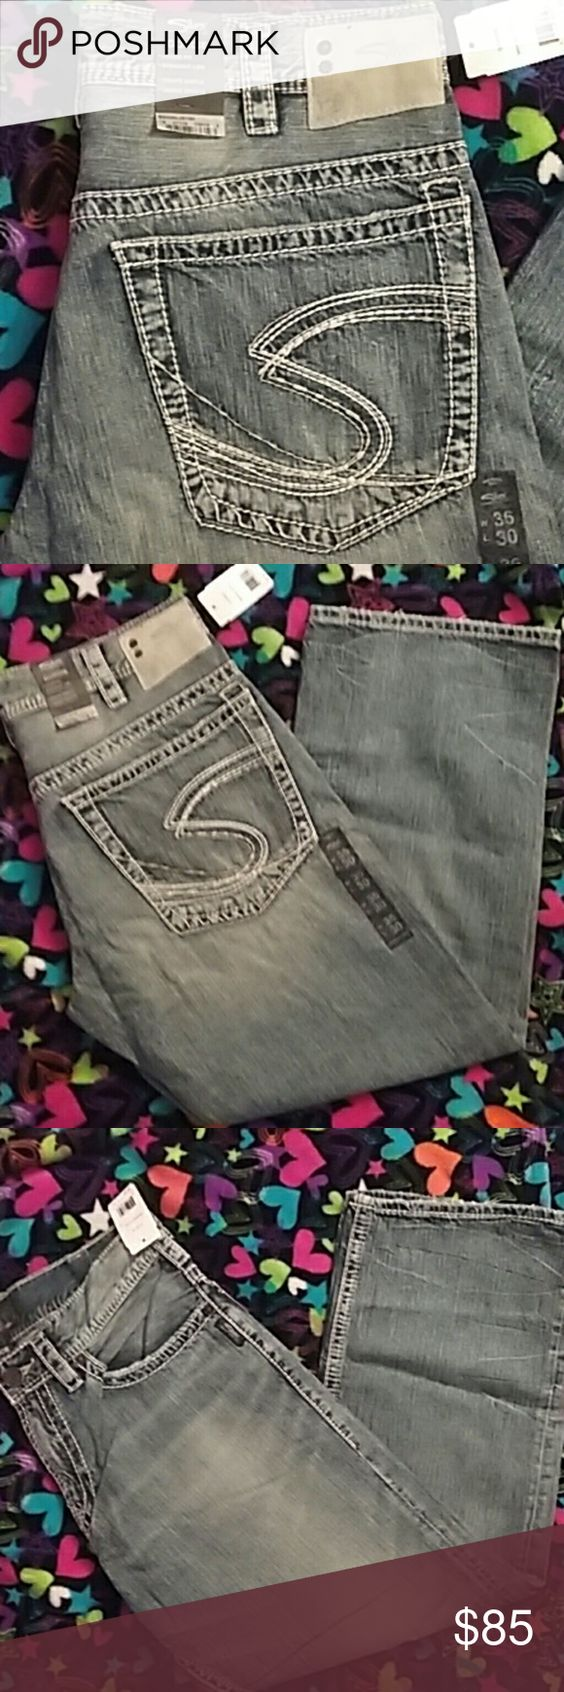 NWT men's Silver jeans 36/30 NWT